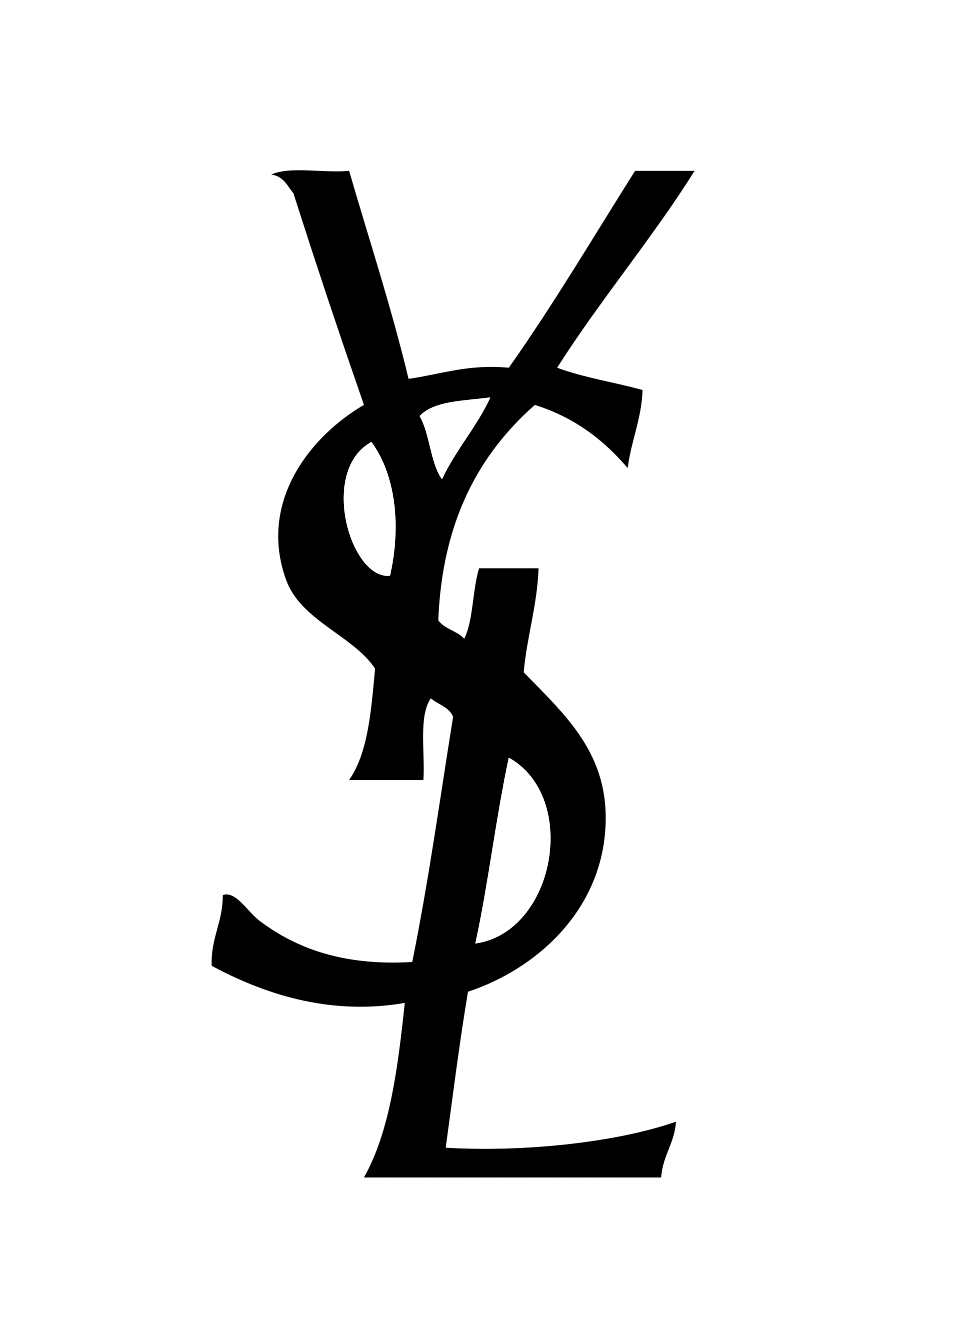 creation logo ysl